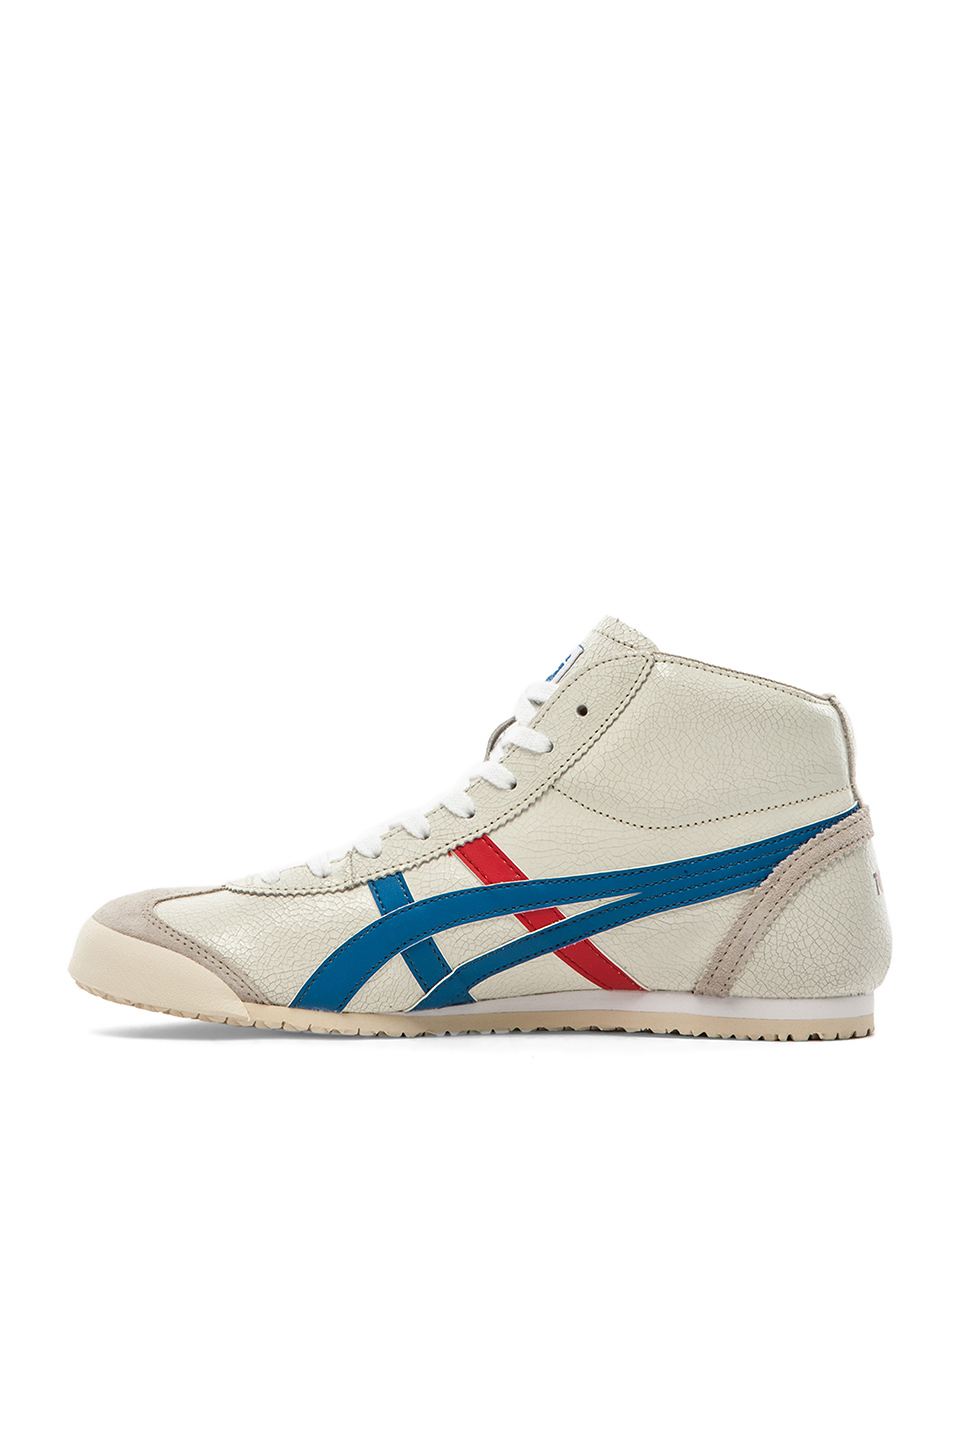 8c6b243cfef Buy Original Onitsuka Tiger Mexico Mid Runner at Indonesia